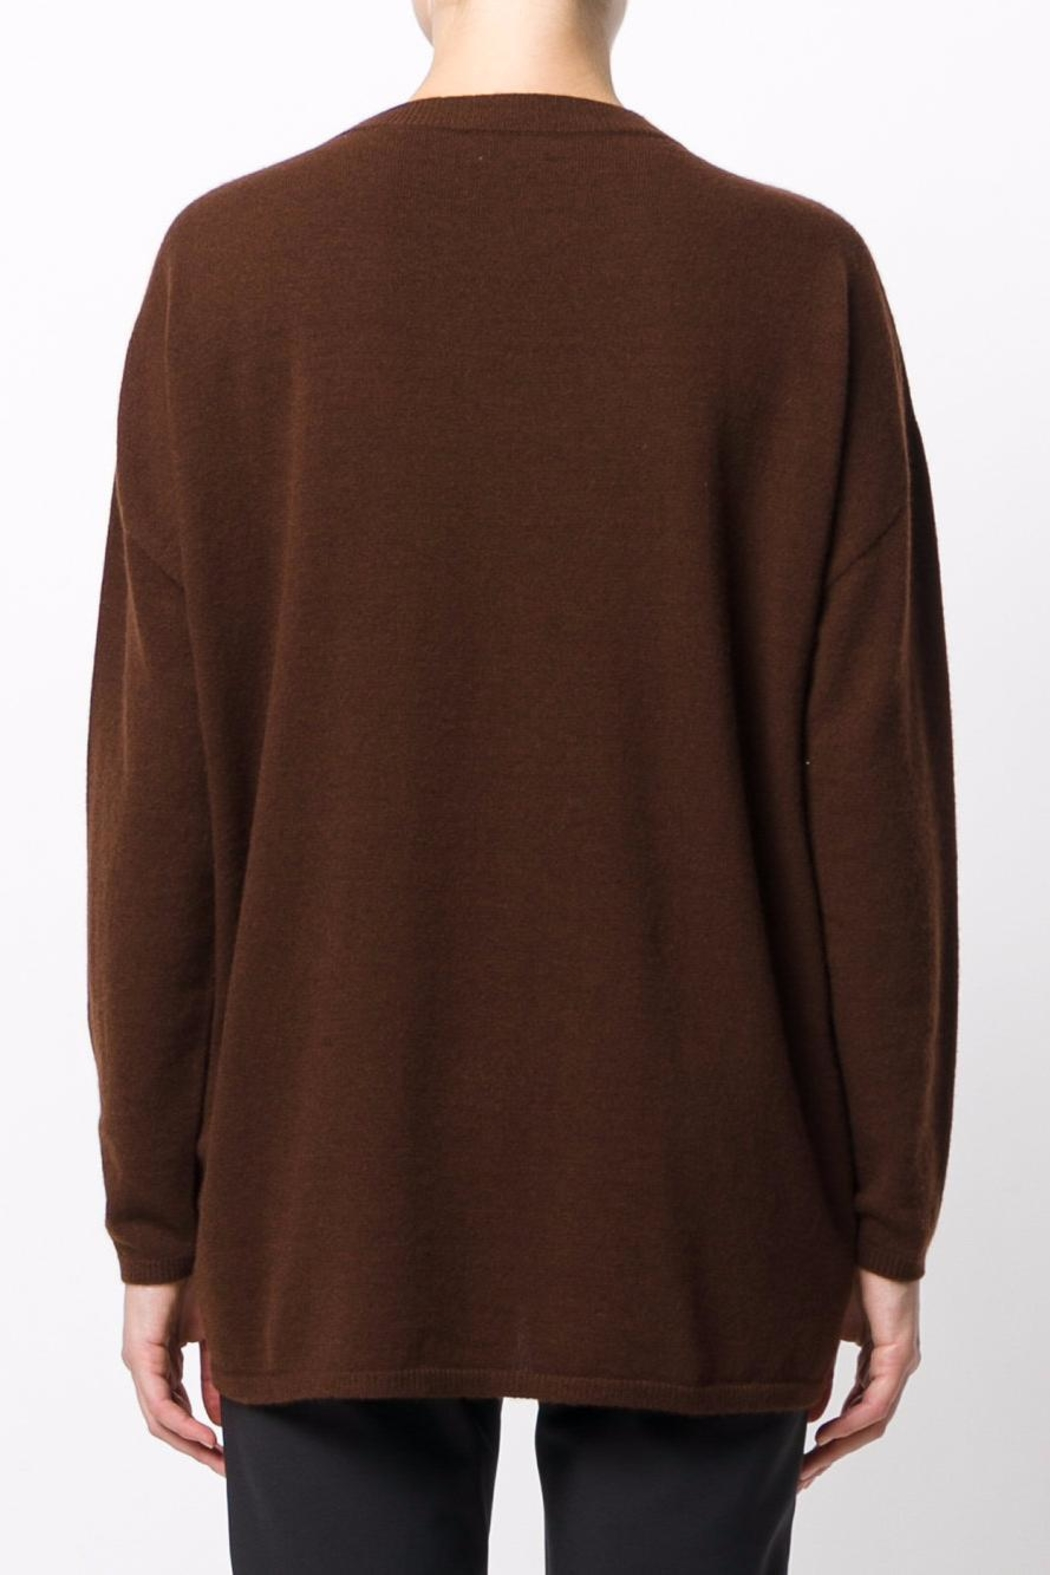 Roberto Collina Round Neck Sweater - Front Full Image